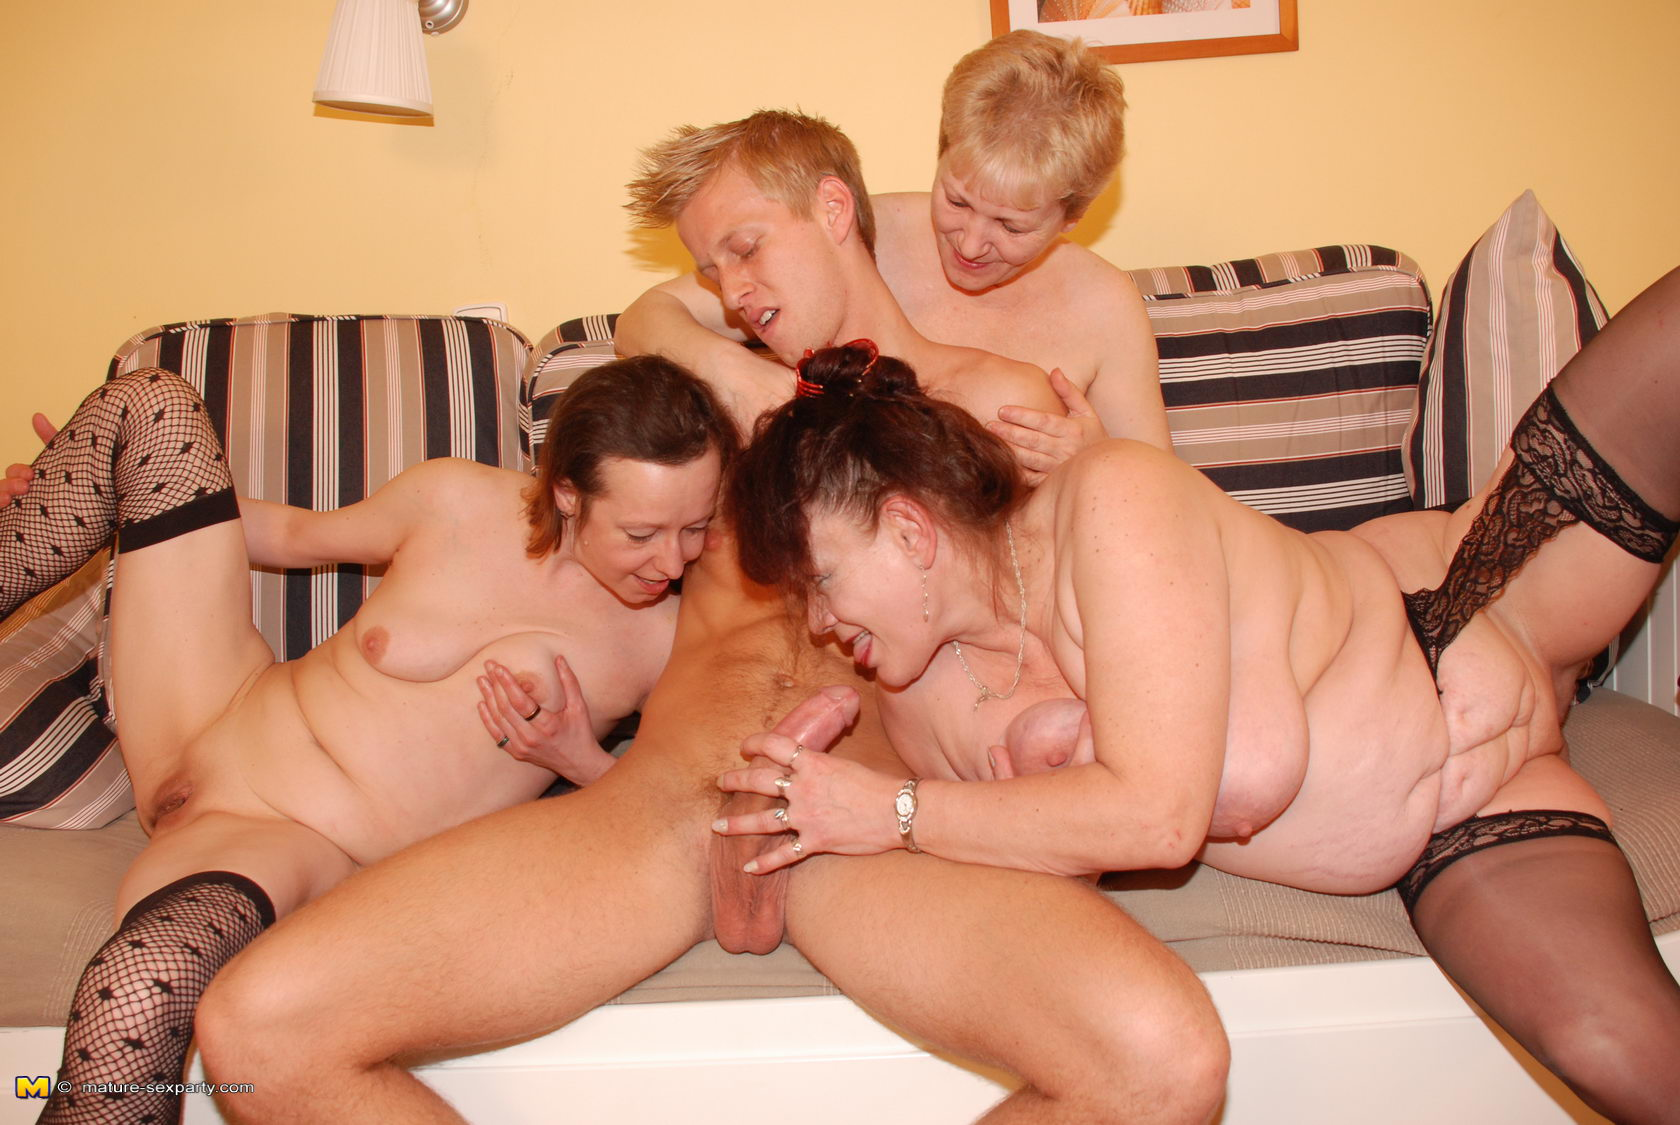 Join. And Amateur milf mom mature sex party are not